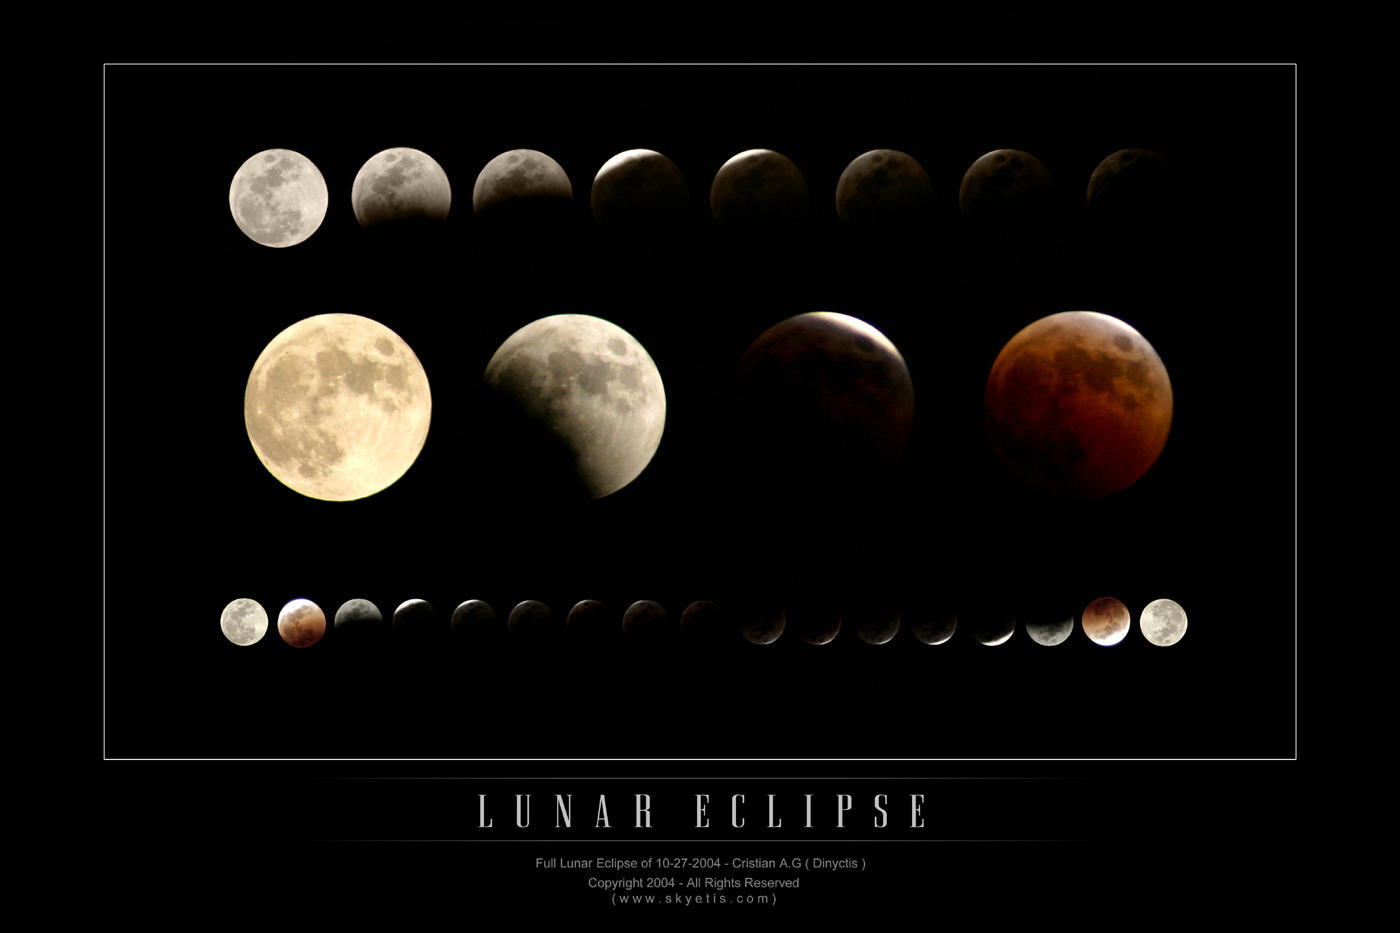 Lunar Eclipse 10-27-2004 by dinyctis